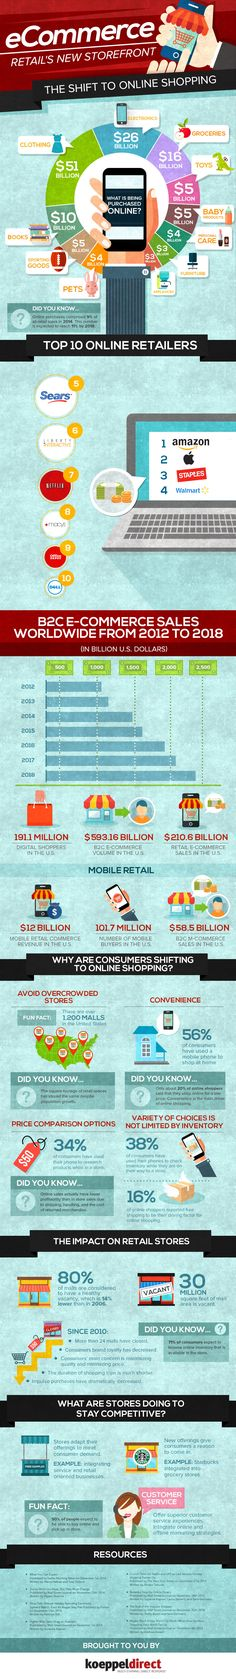 #eCommerce: Retails New Storefront, The Shift to Online Shopping #Infographic